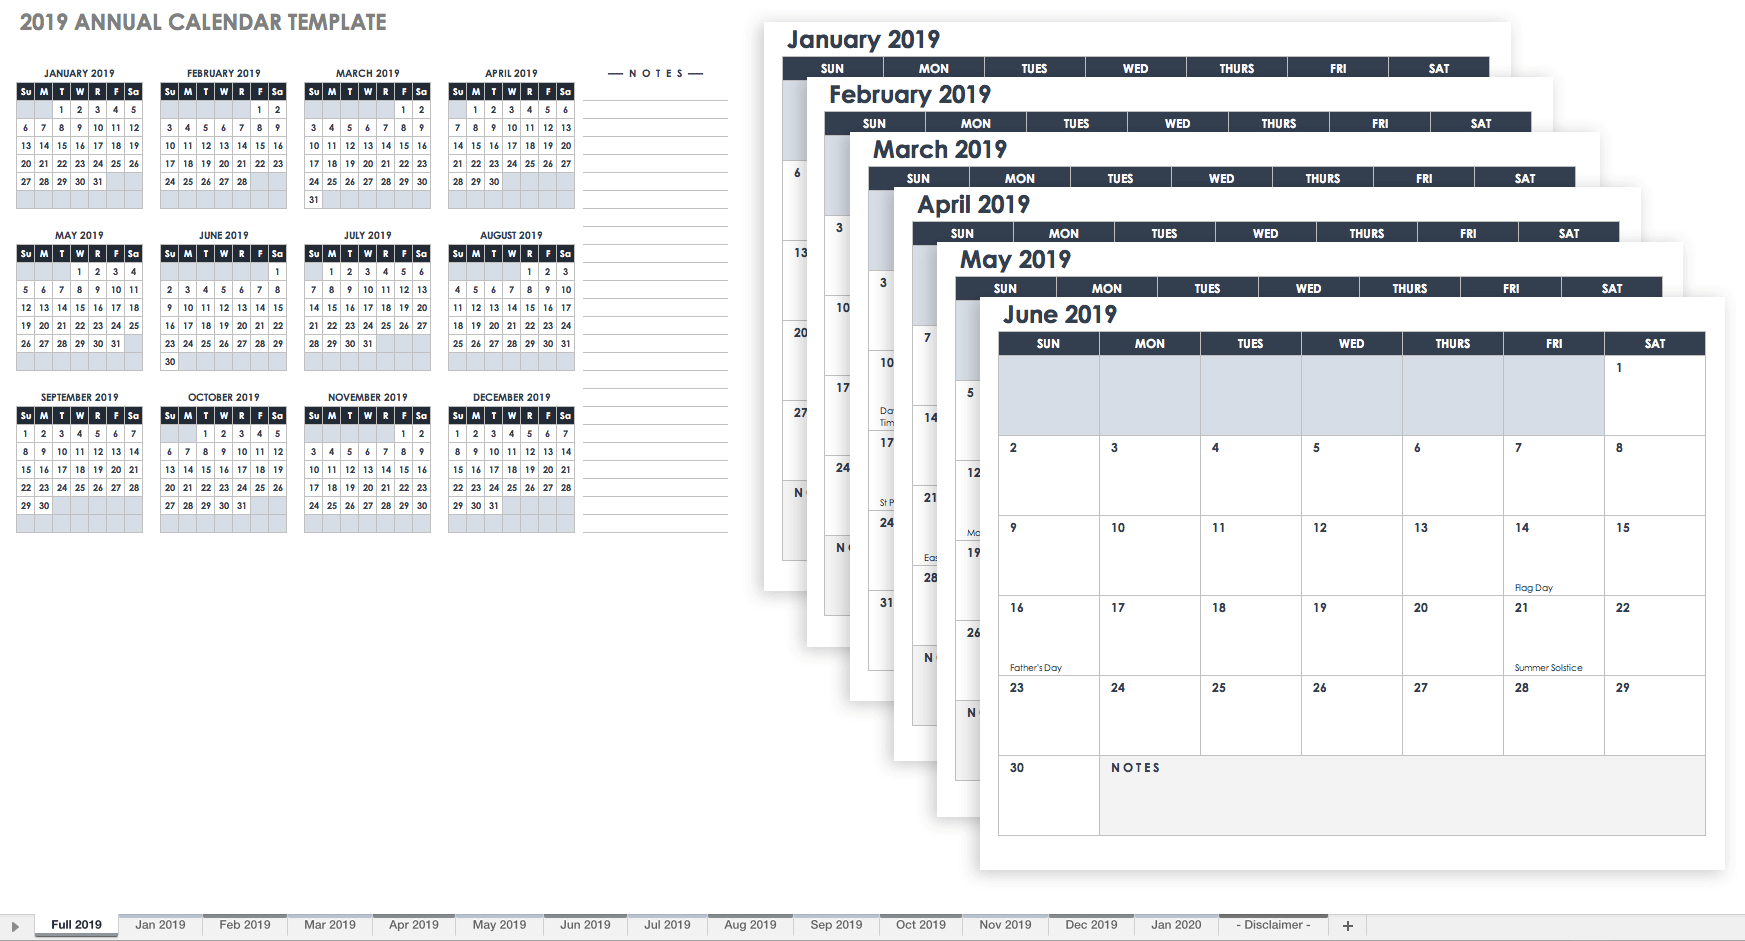 15 Free Monthly Calendar Templates | Smartsheet intended for Blank 12 Month Calender